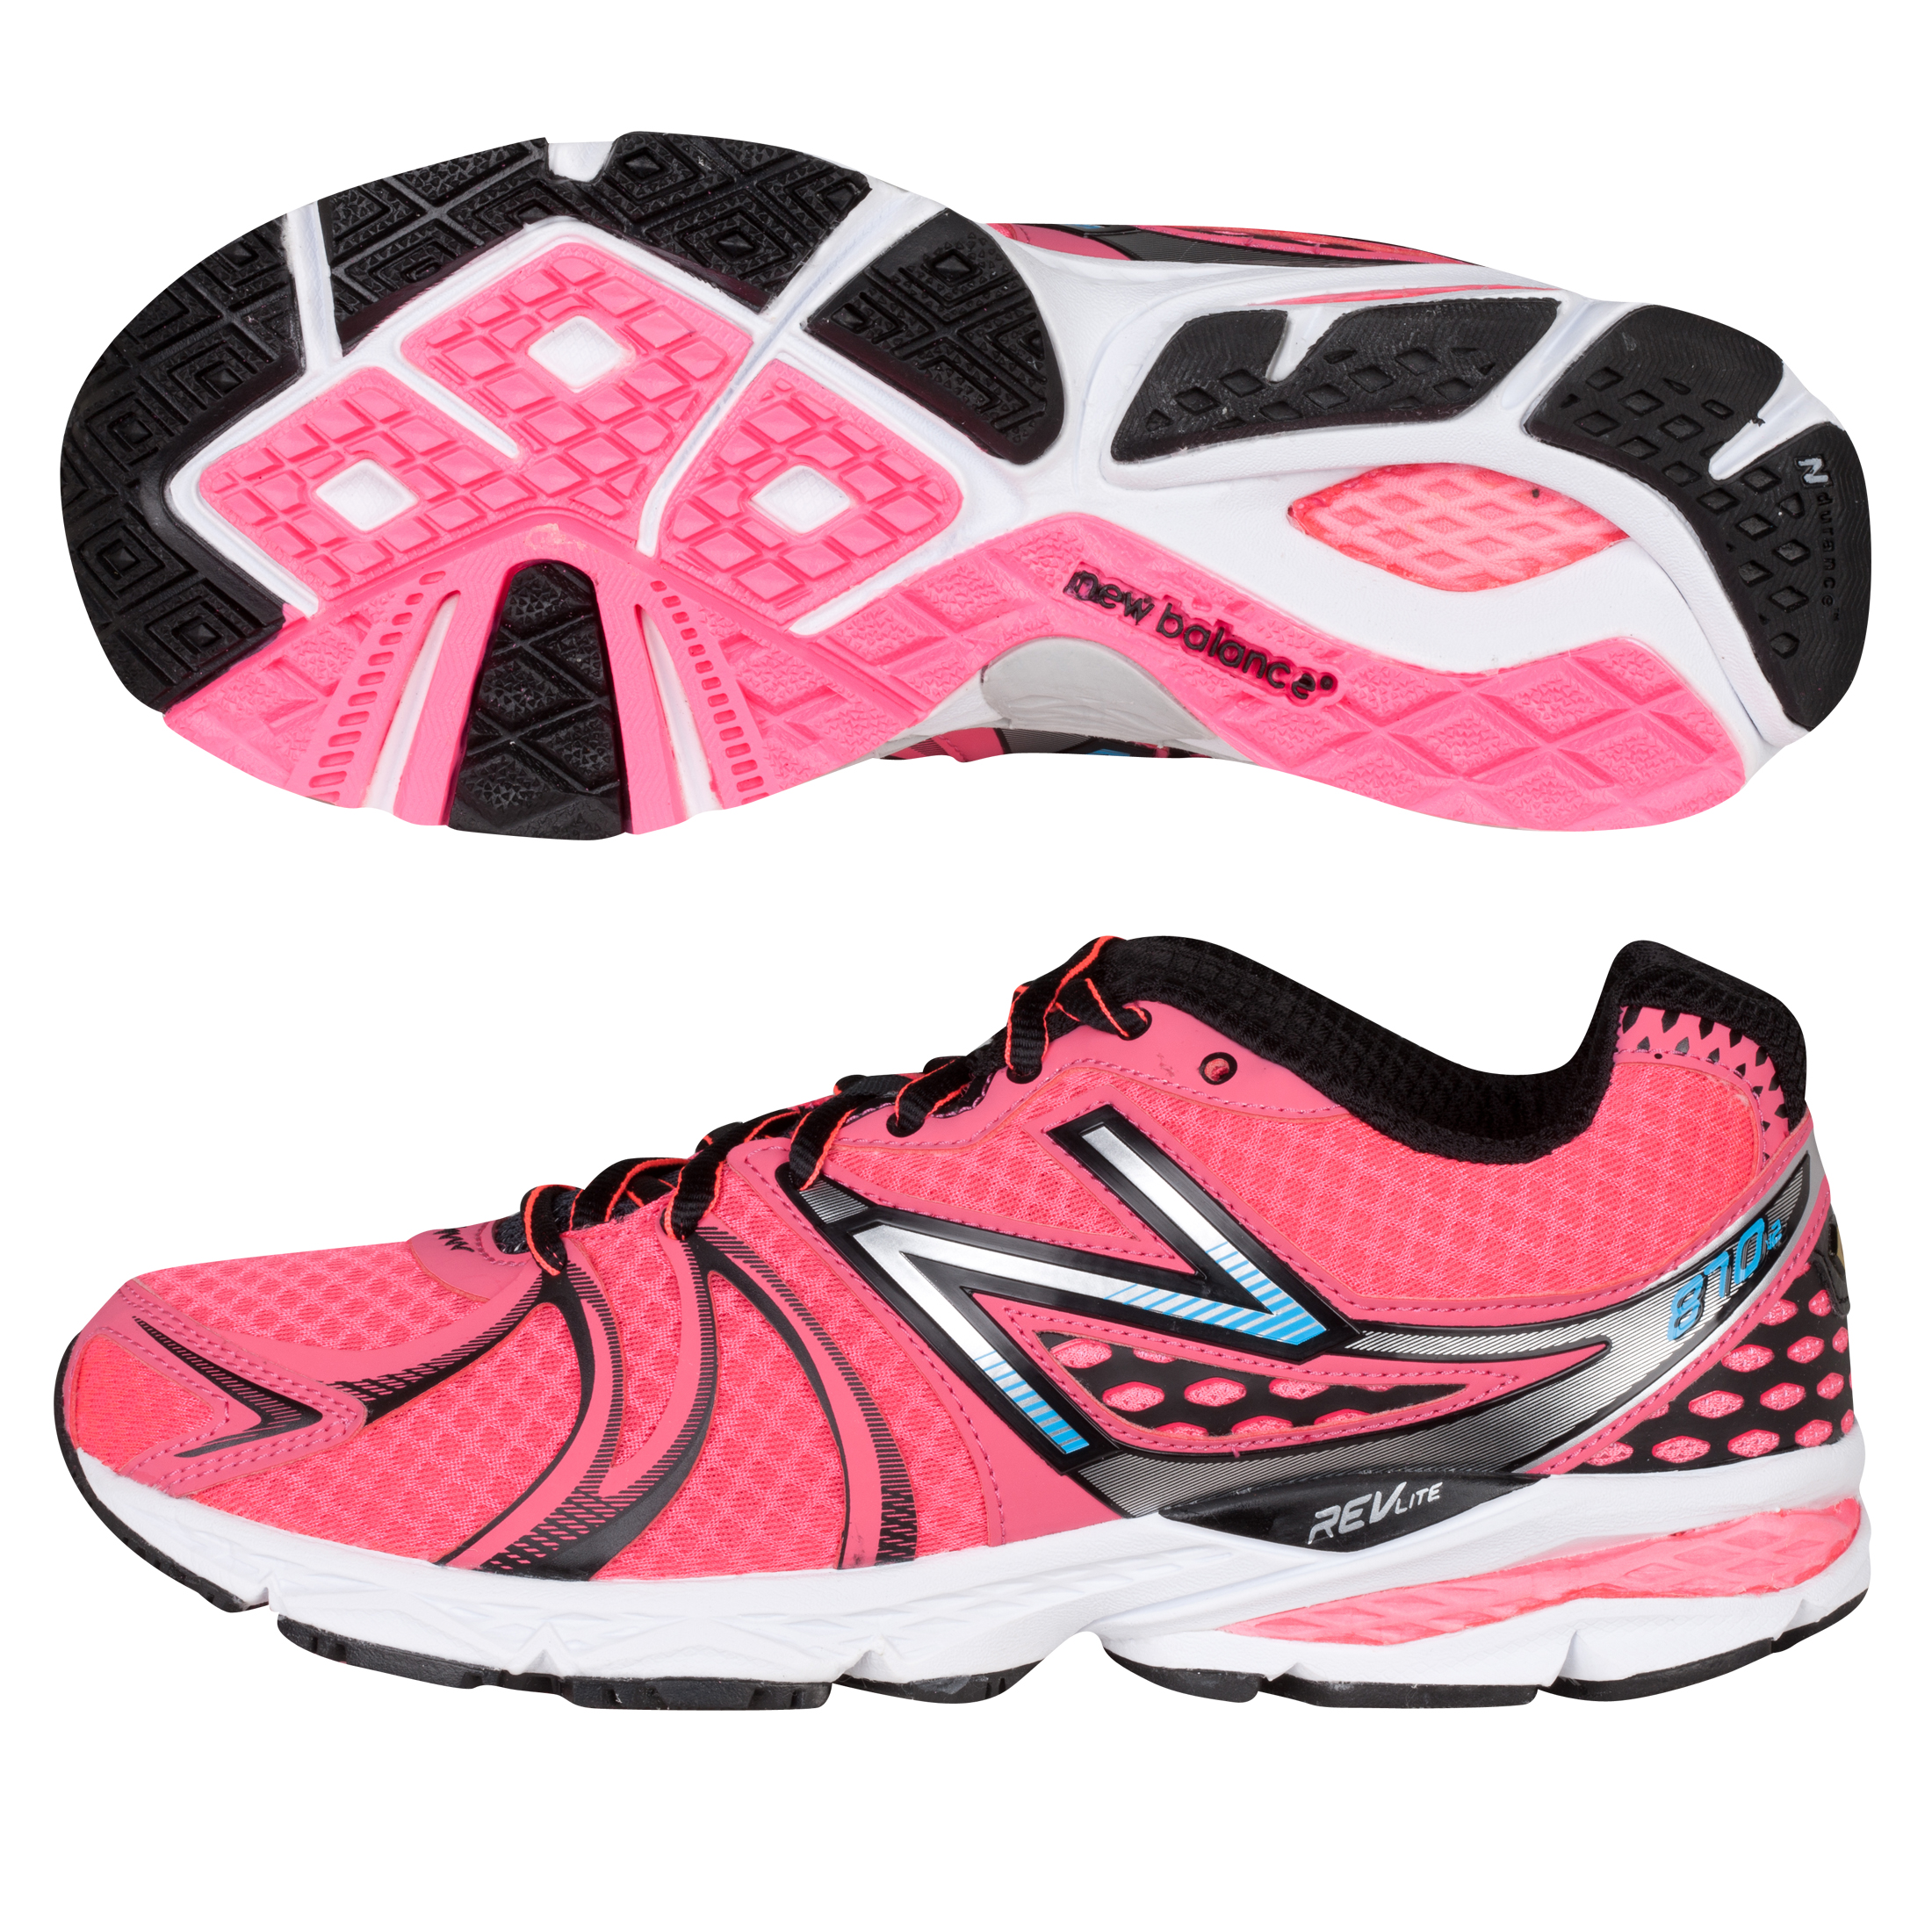 New Balance 870V2 Running Trainer - Pink Black - Womens